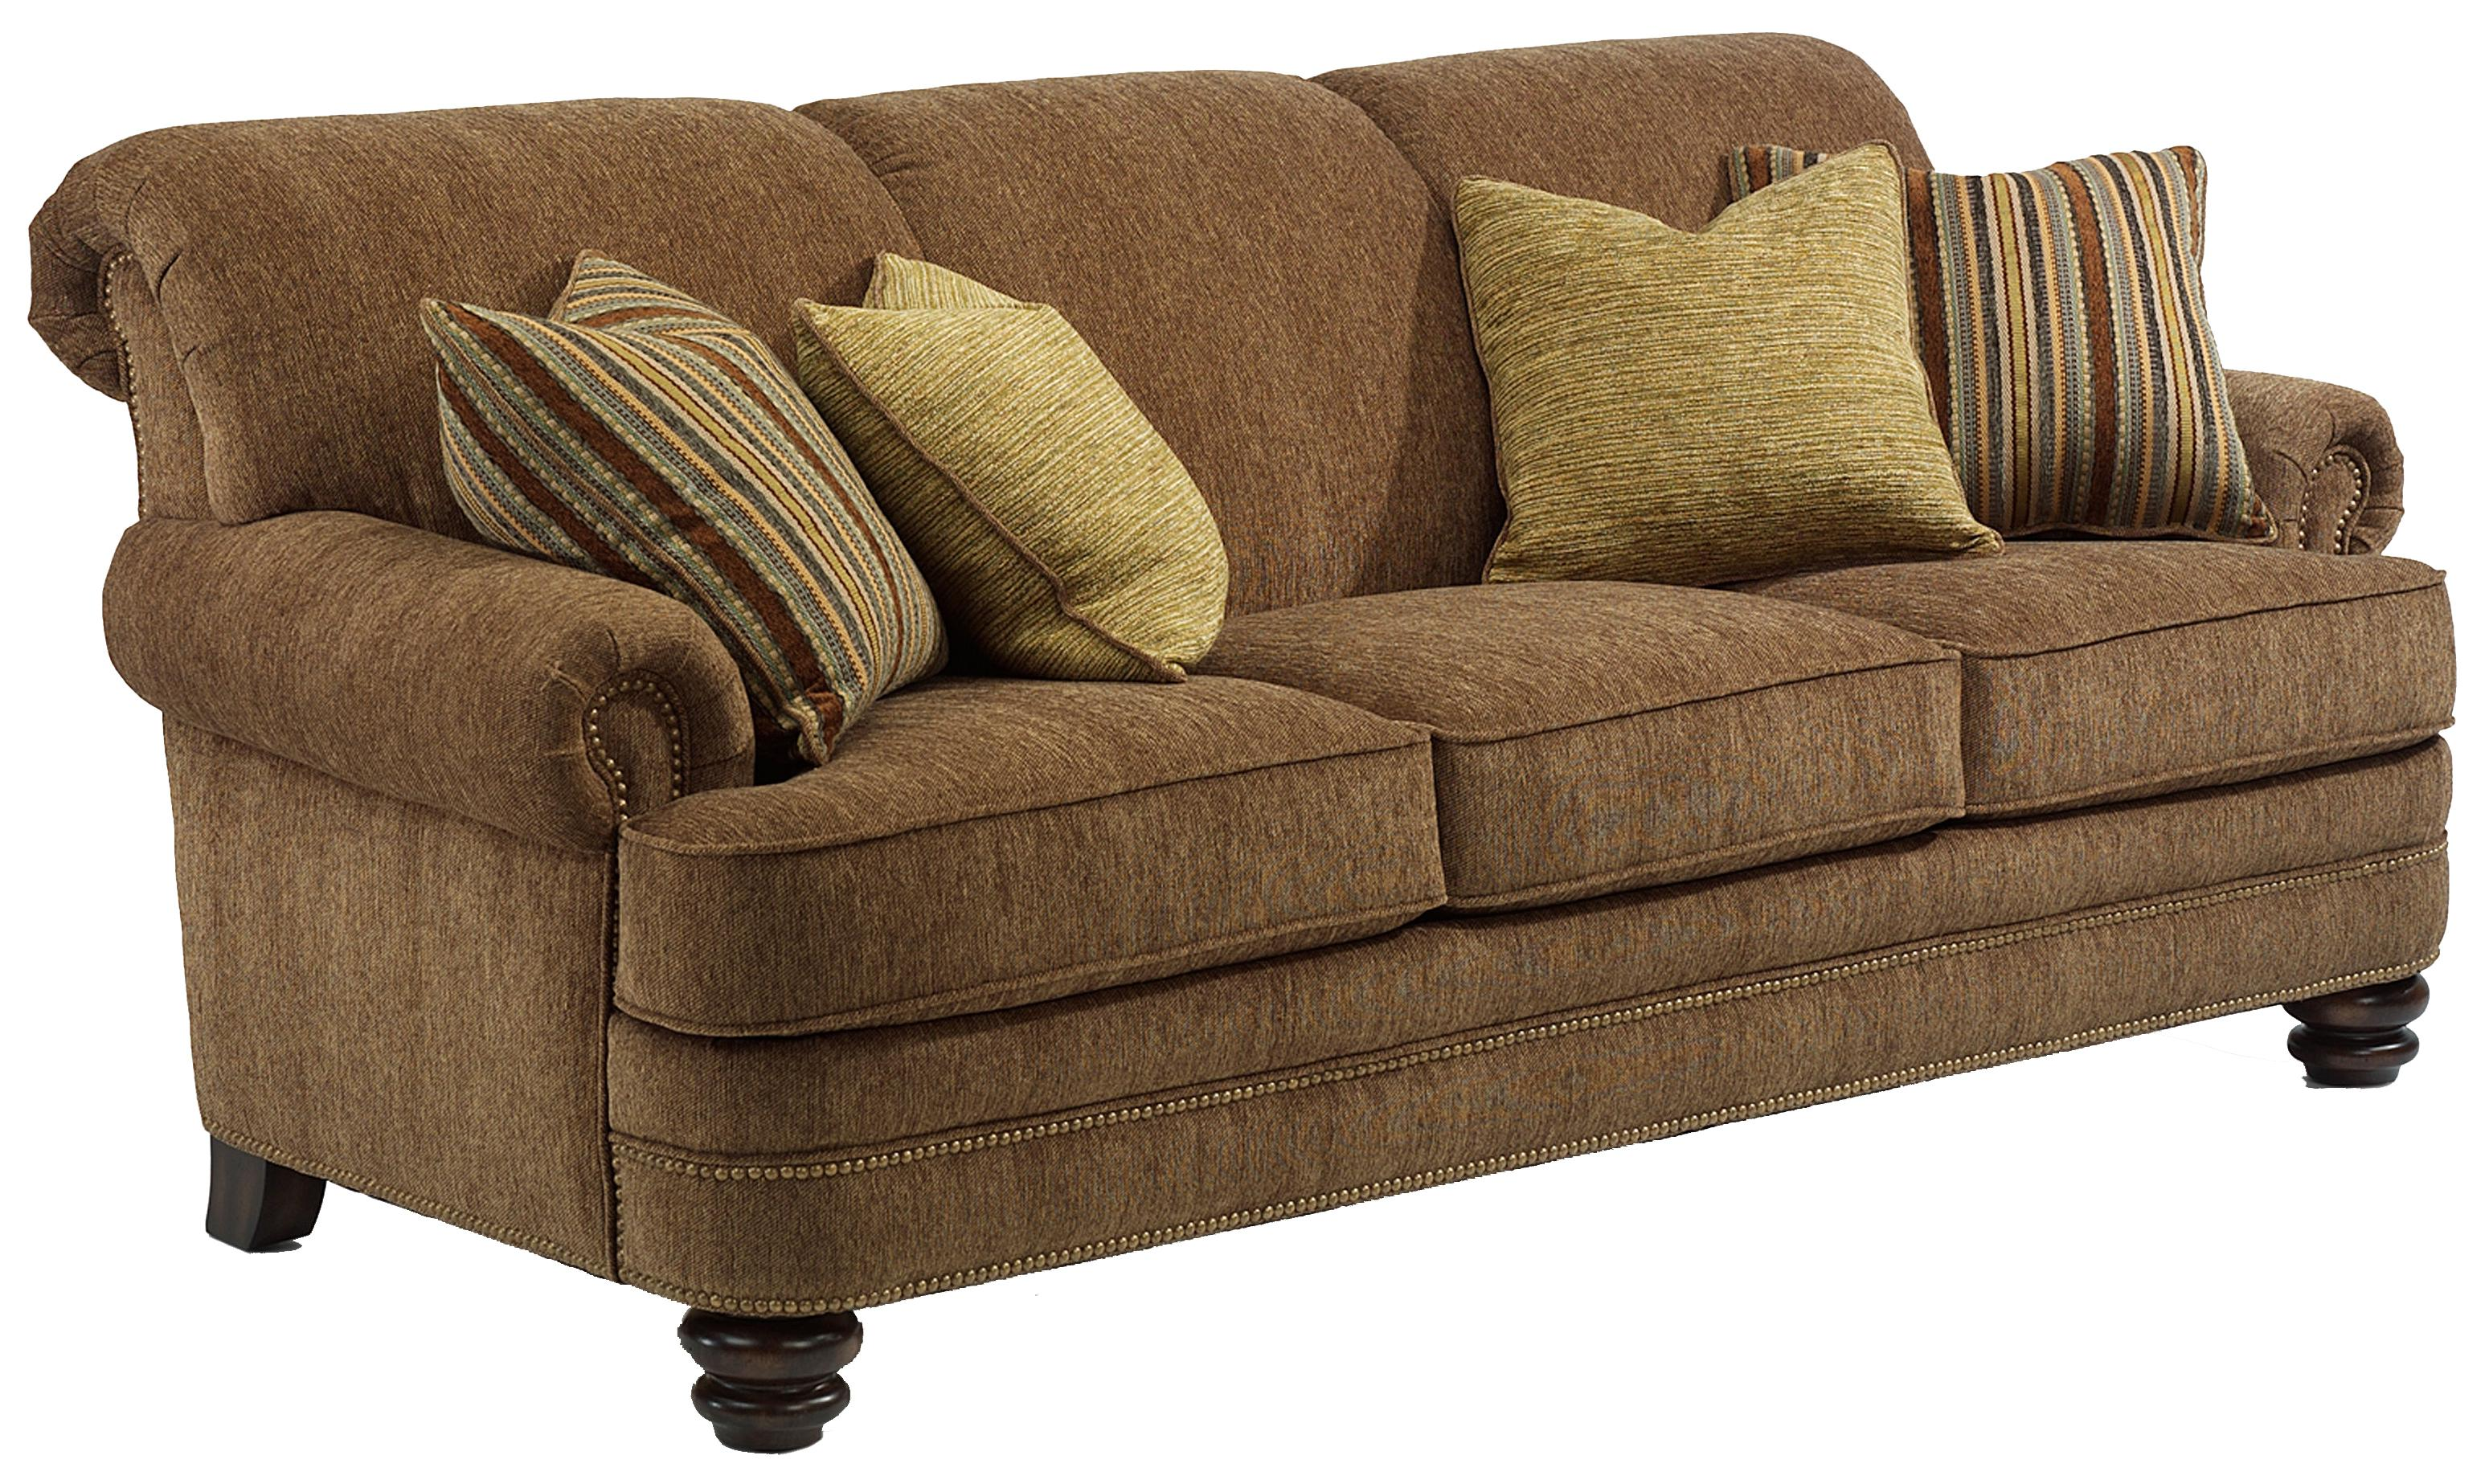 Flexsteel Bay Bridge Traditional Rolled Back Sofa